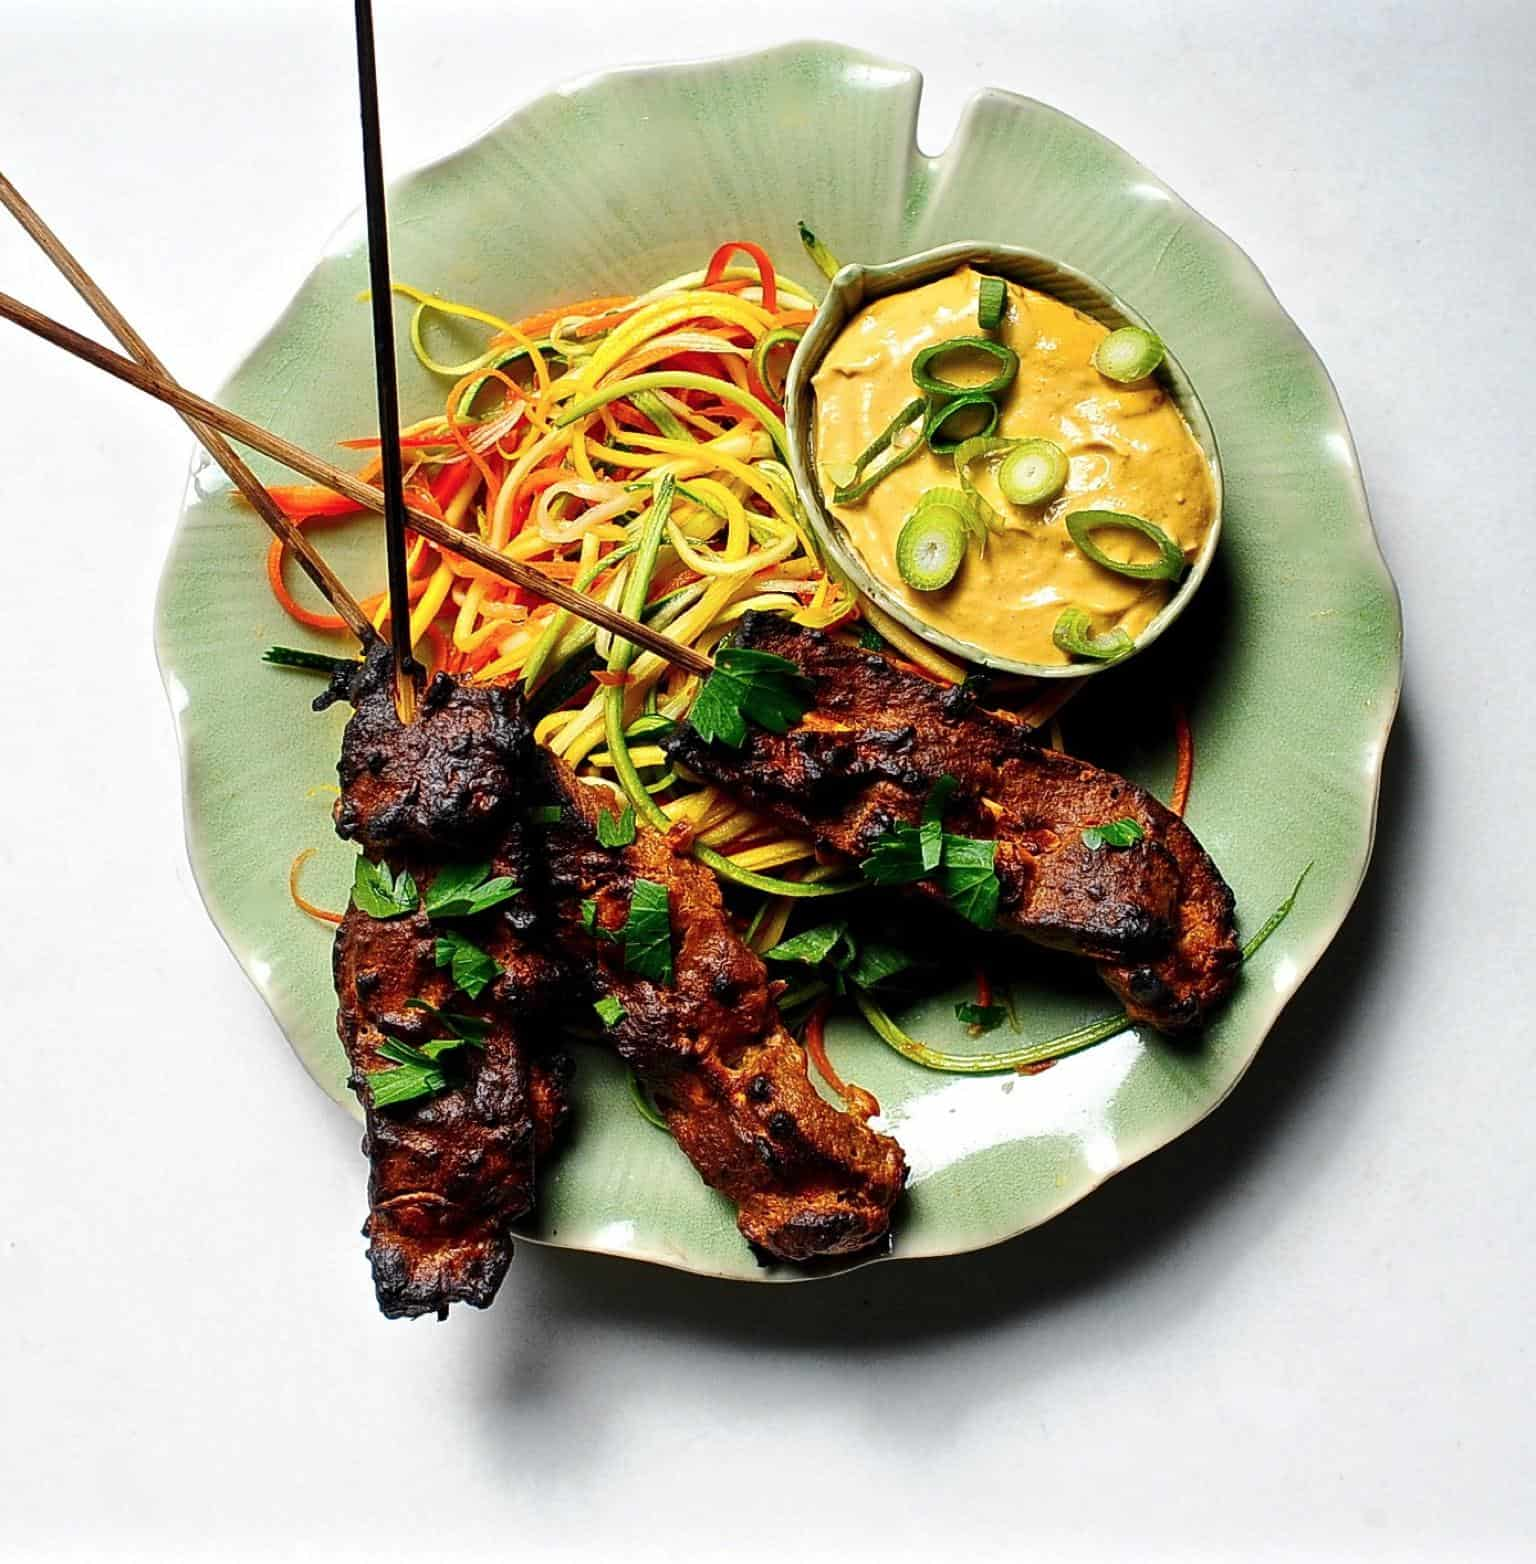 Vegan satay with spicy peanut sauce